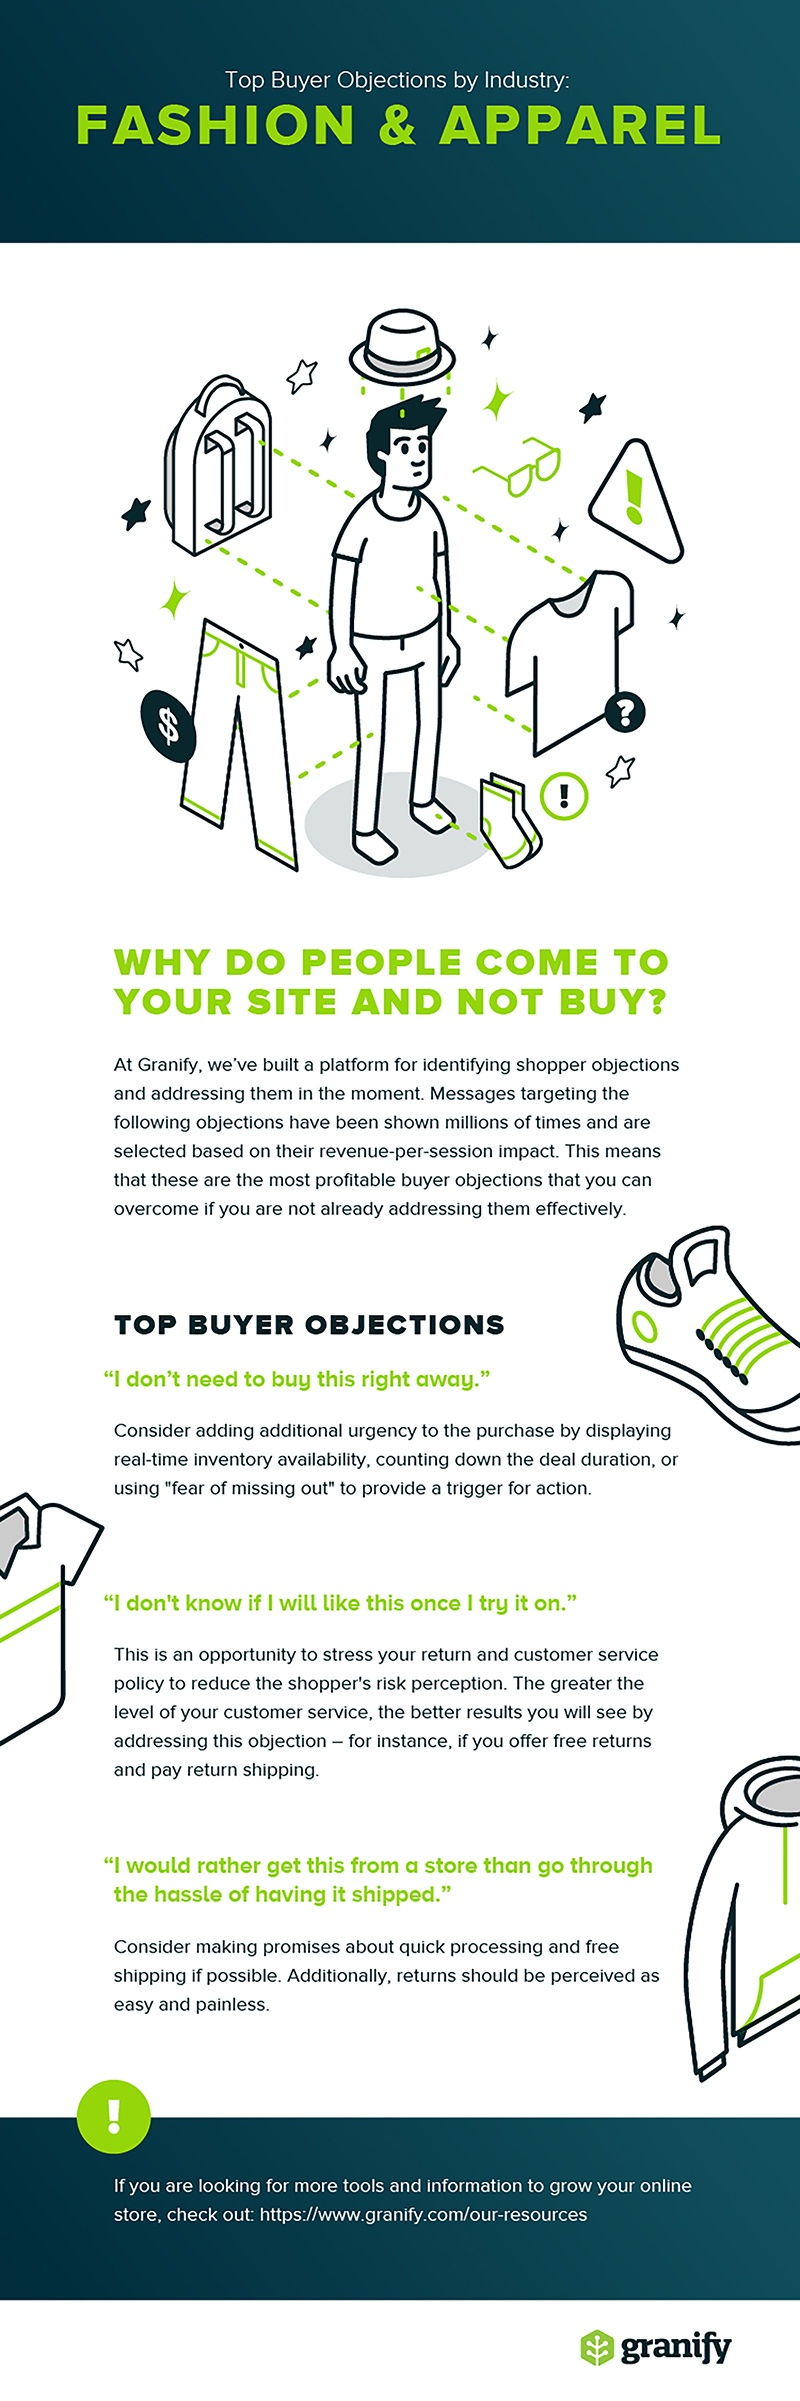 granify_fashion-objections_infographic